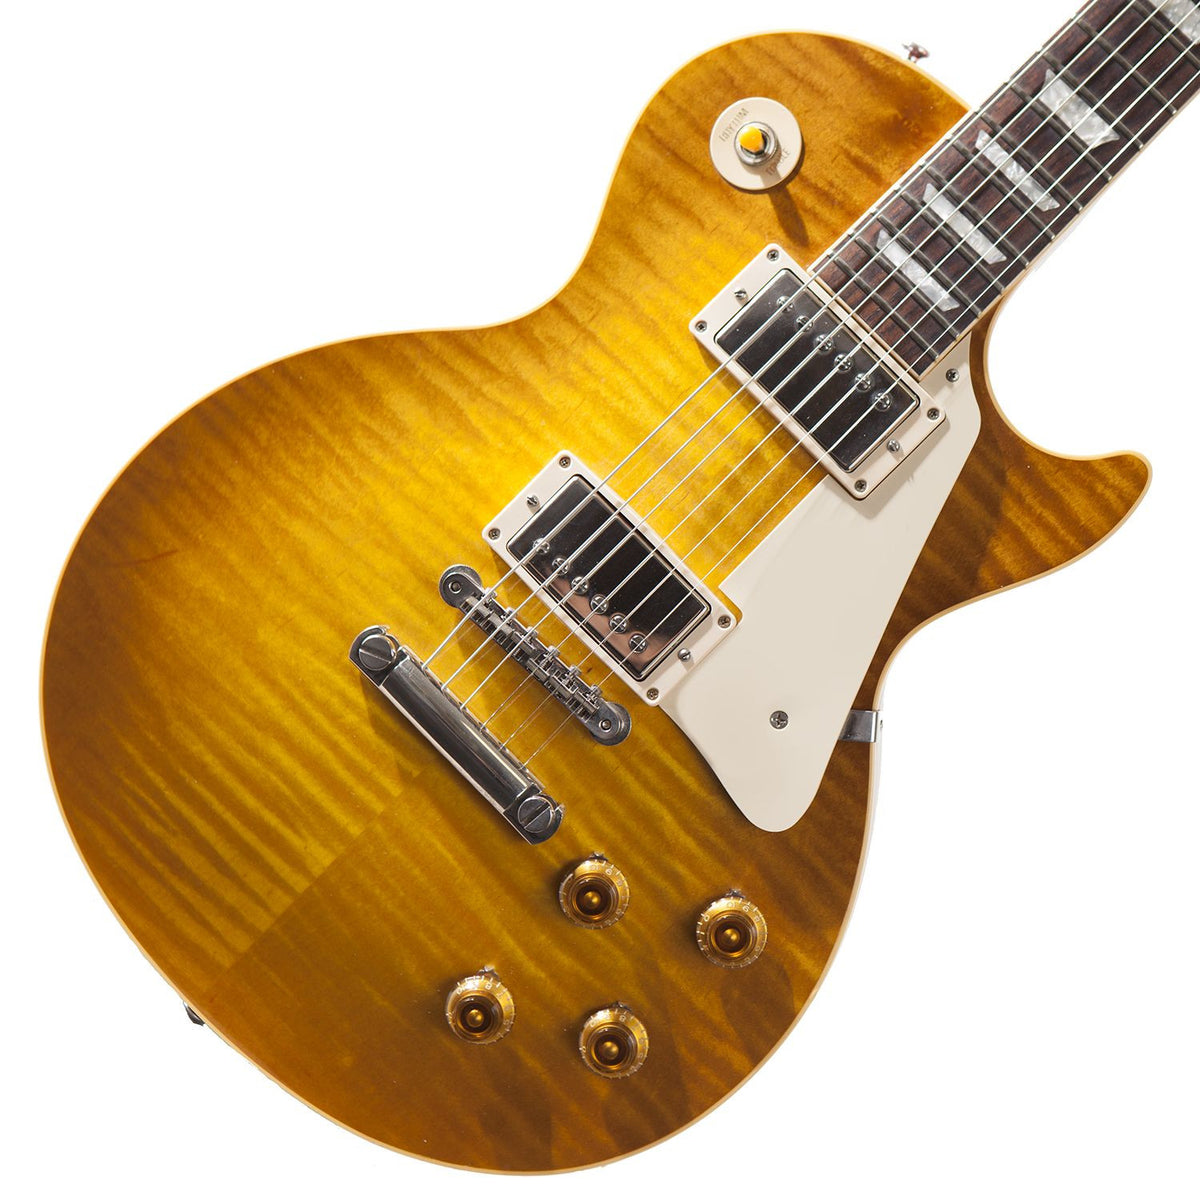 1998 Gibson Les Paul R8, Butterscotch - Garrett Park Guitars  - 1